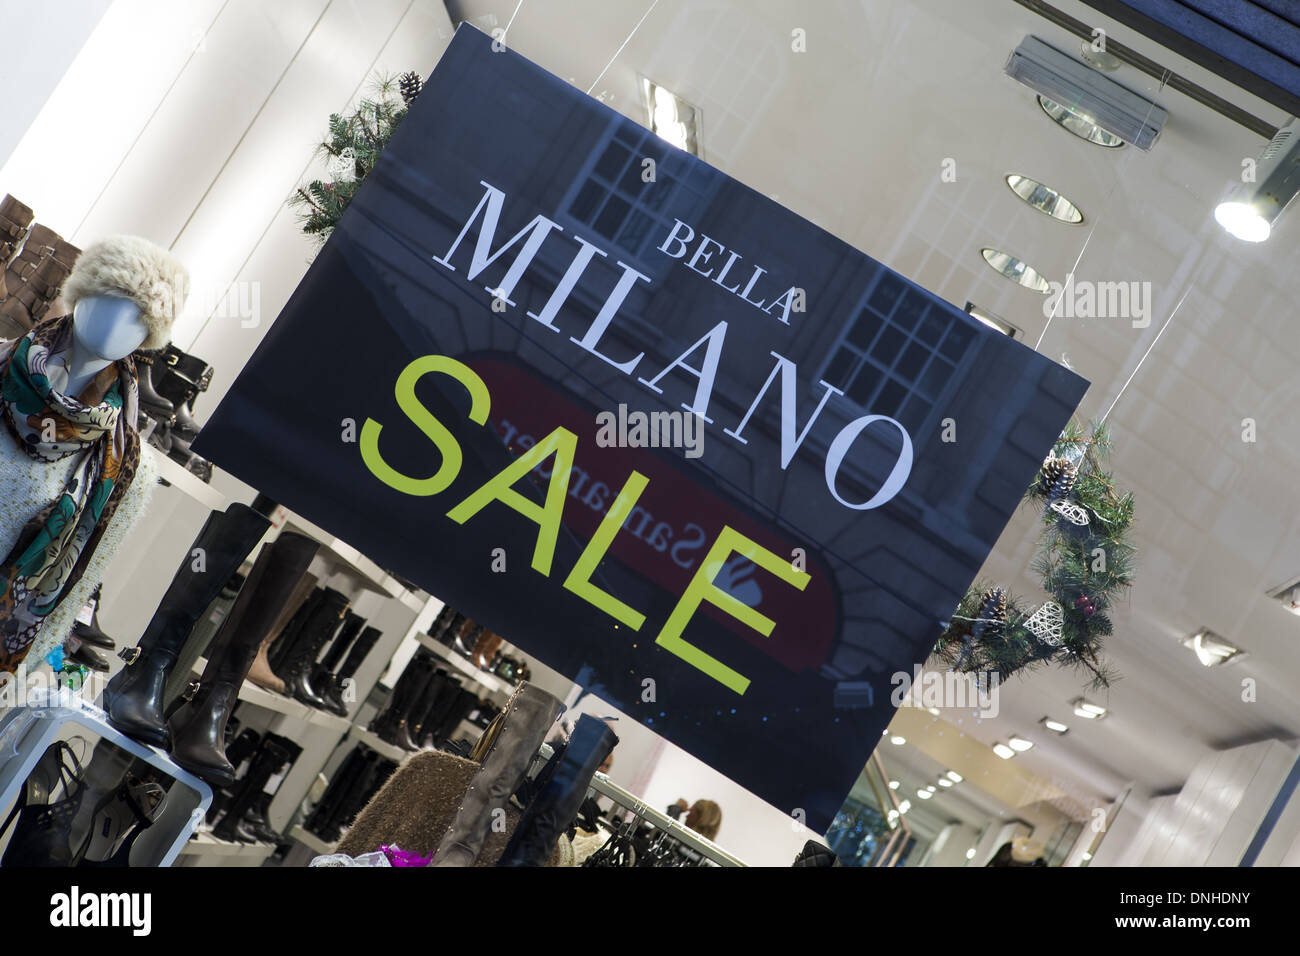 Bella Milano Sale Liverpool One Merseyside, UK  shops and shoppers during festive period, 2013. - Stock Image